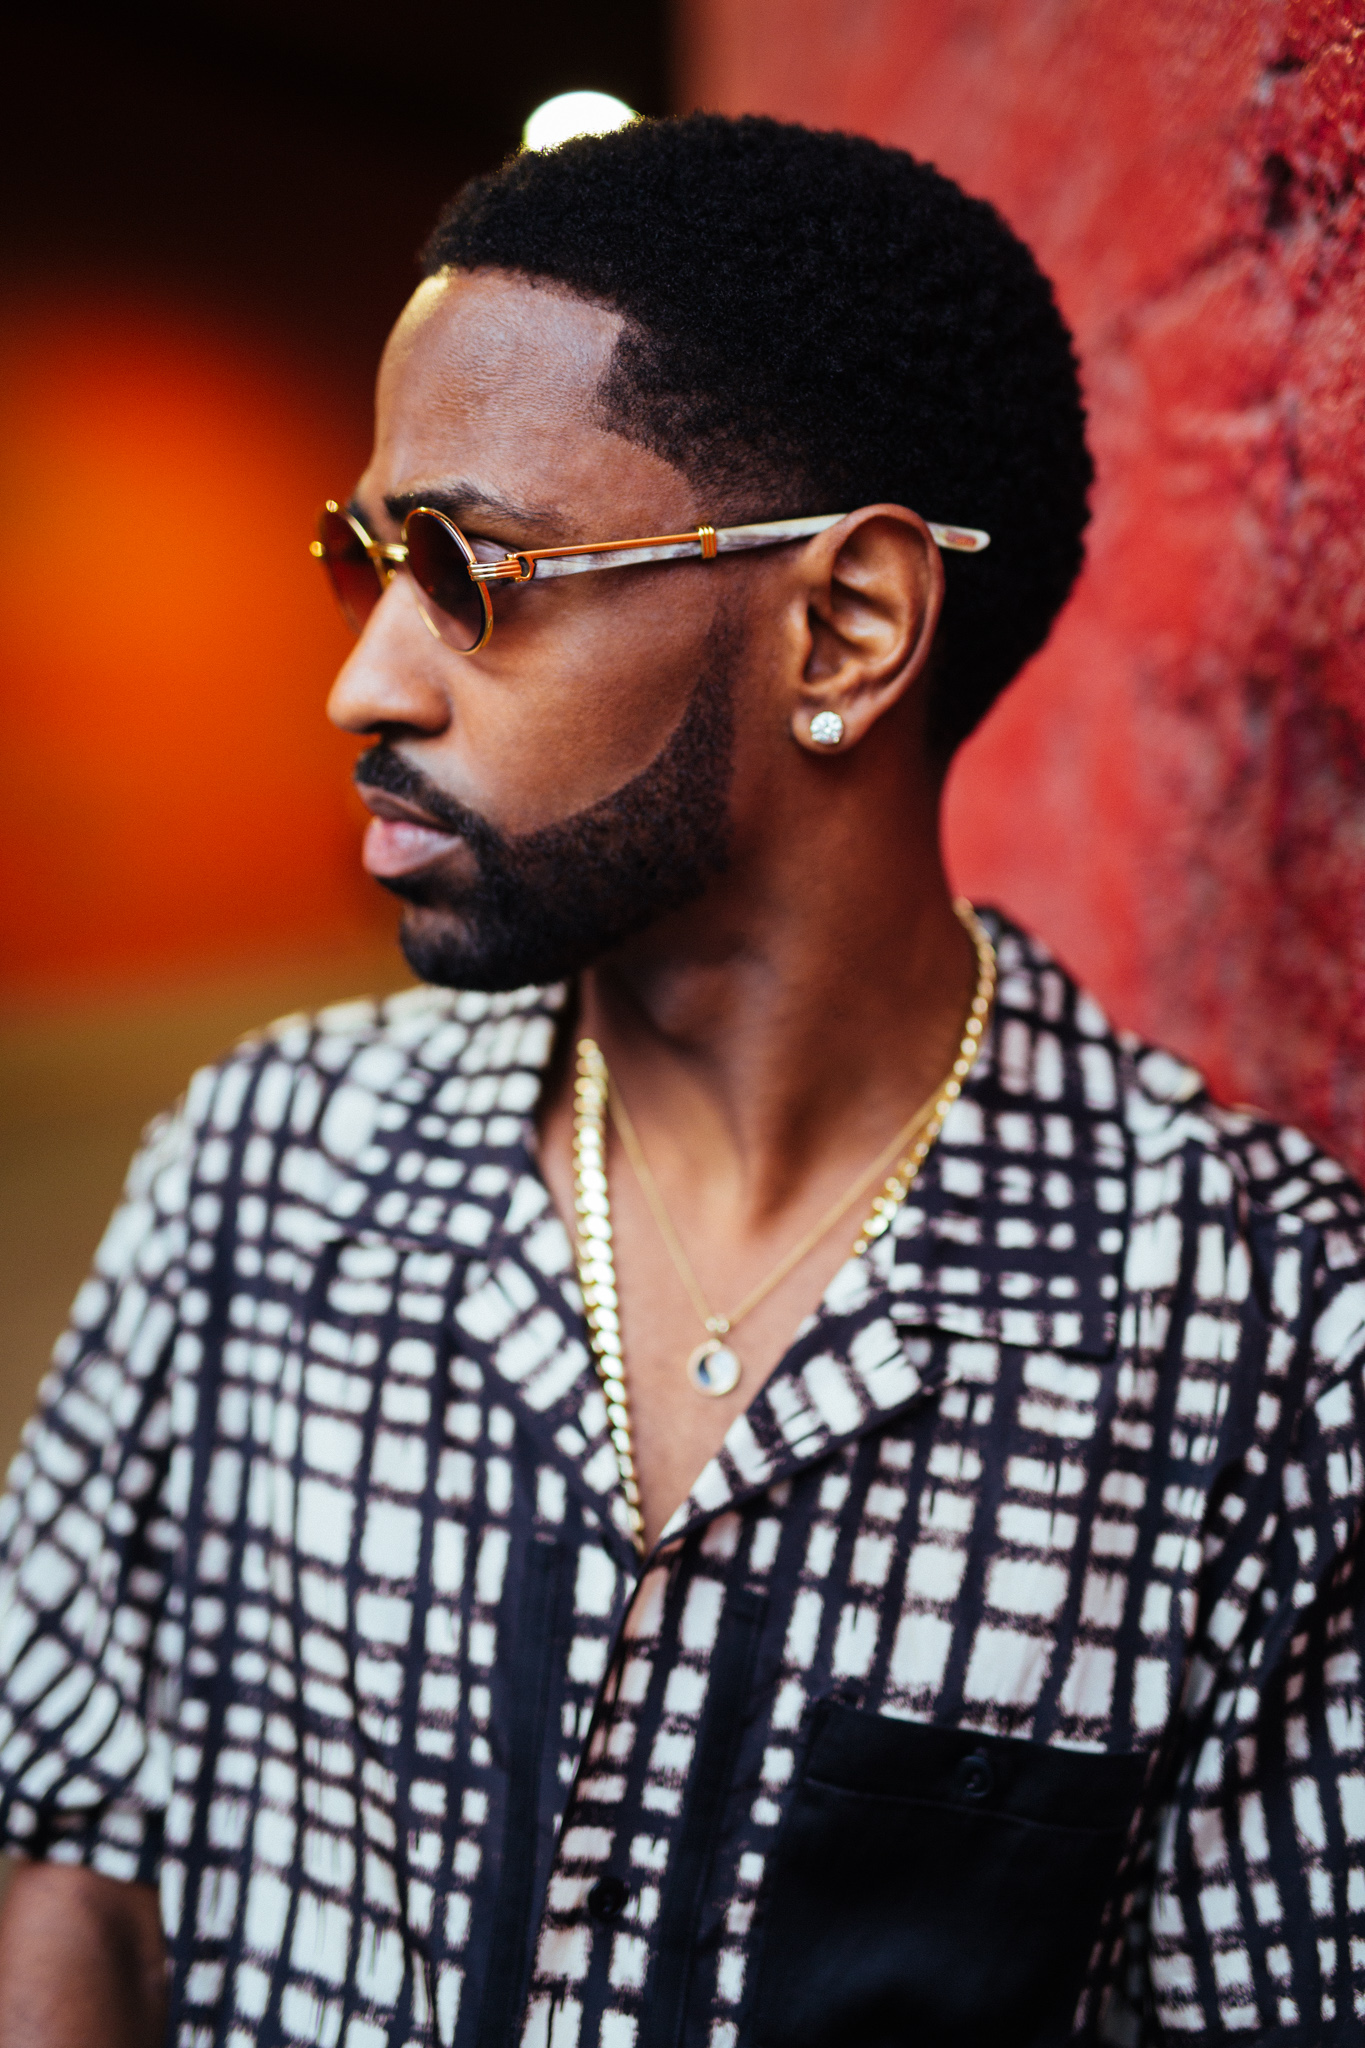 Big Sean in a pair of Cartier sunglasses.